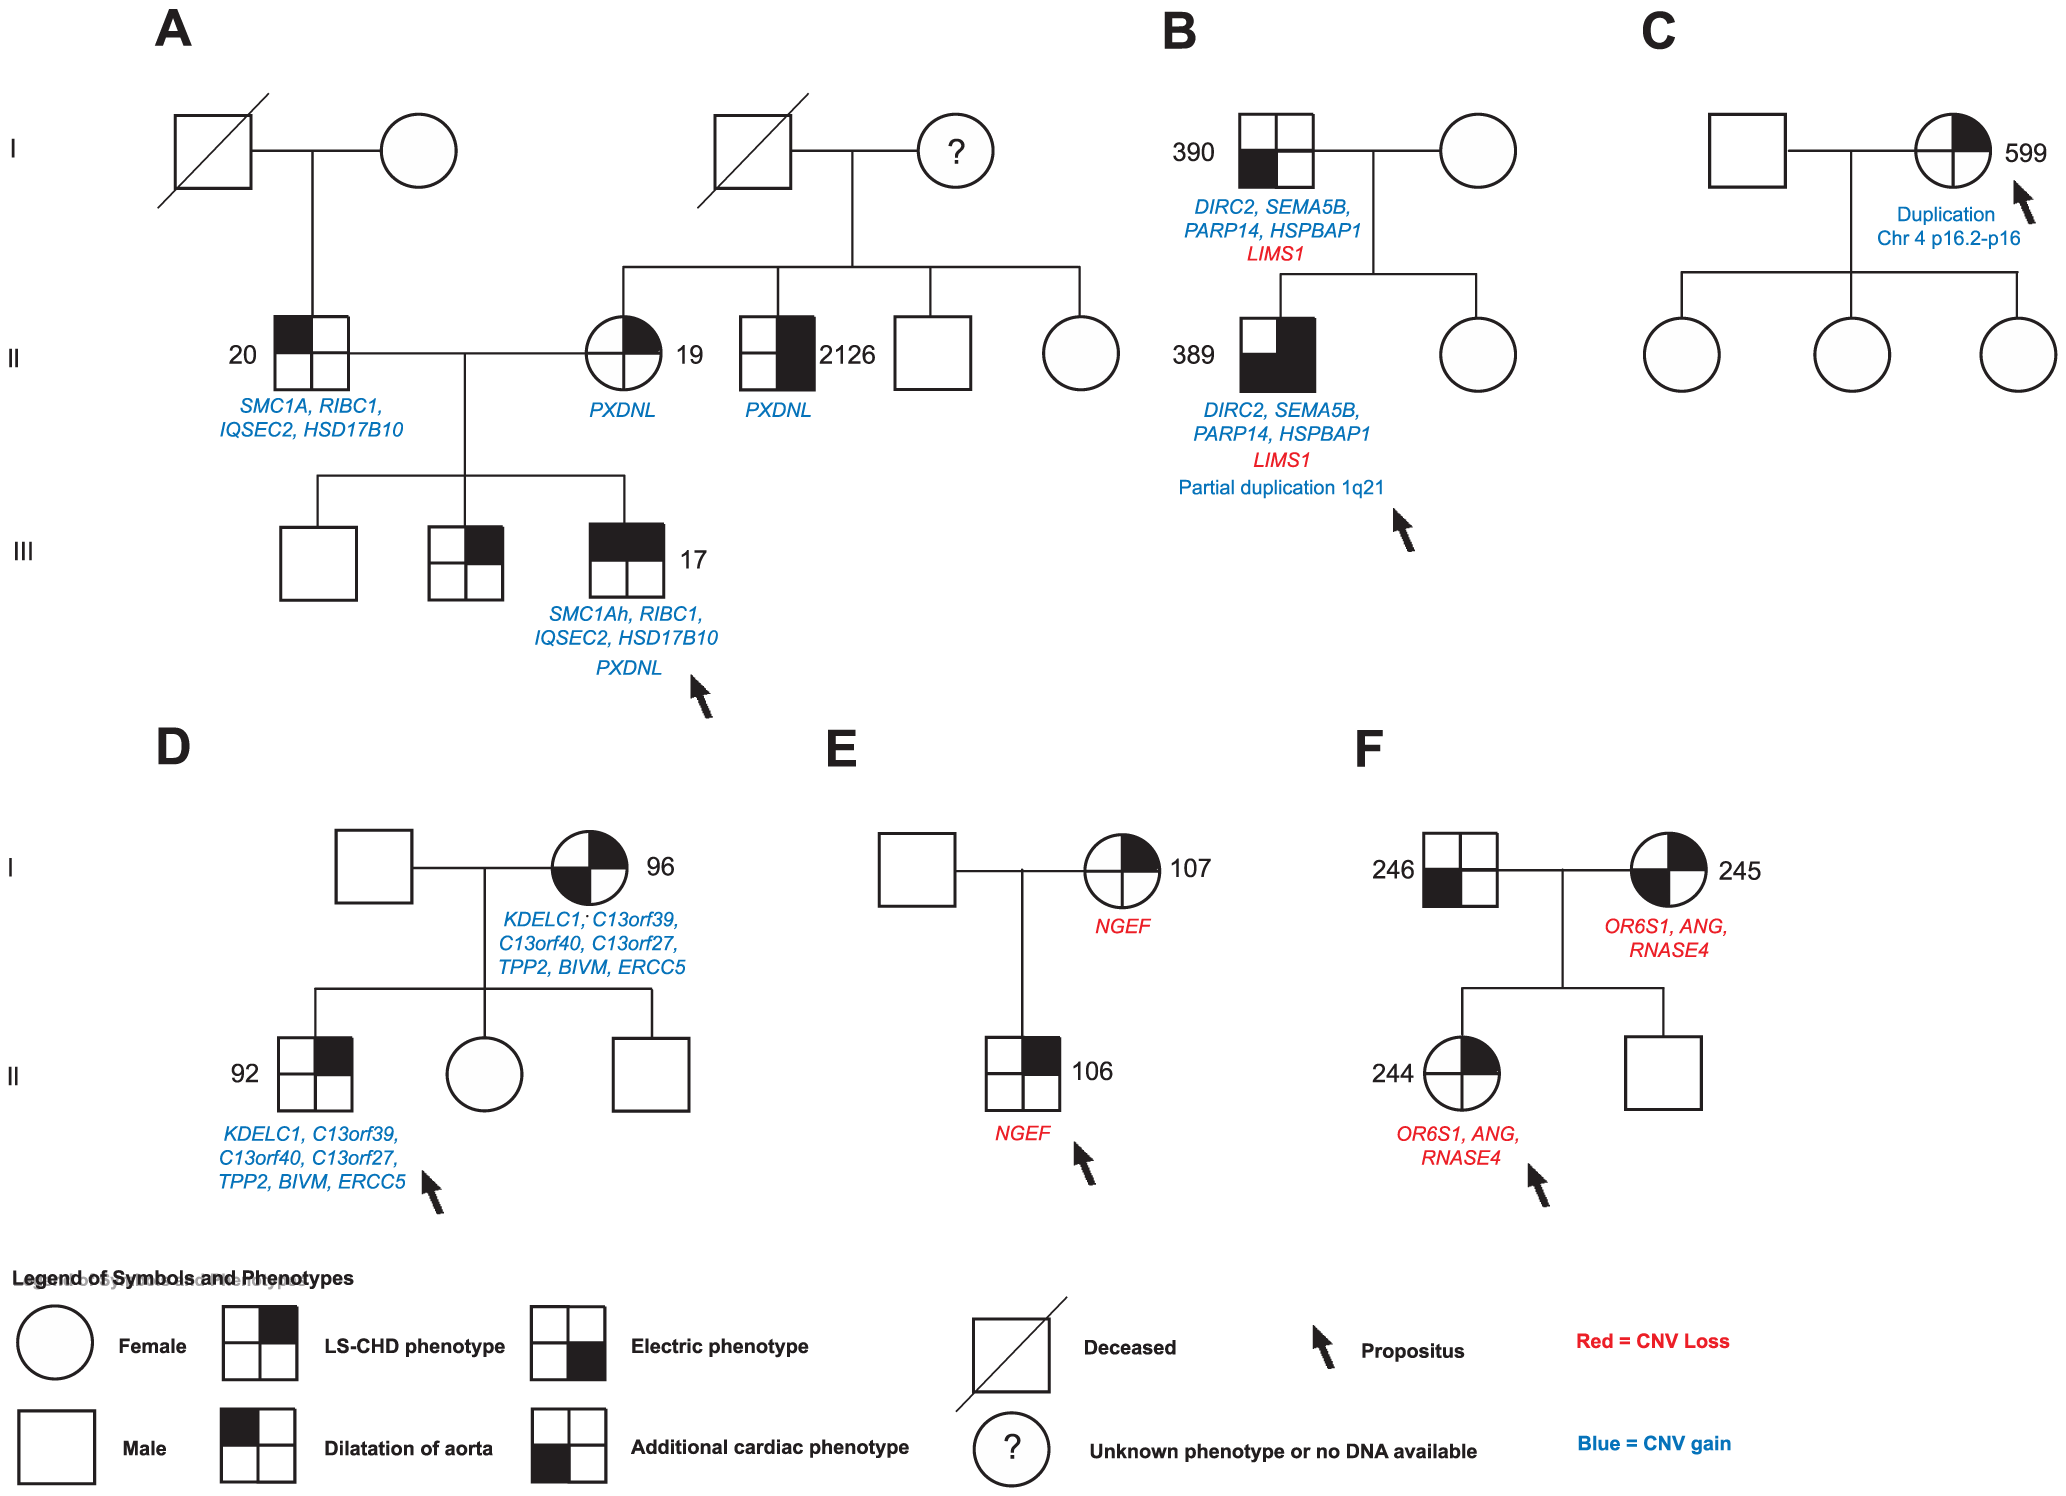 Selected segregation patterns of CNVs in LS-CHD pedigrees.